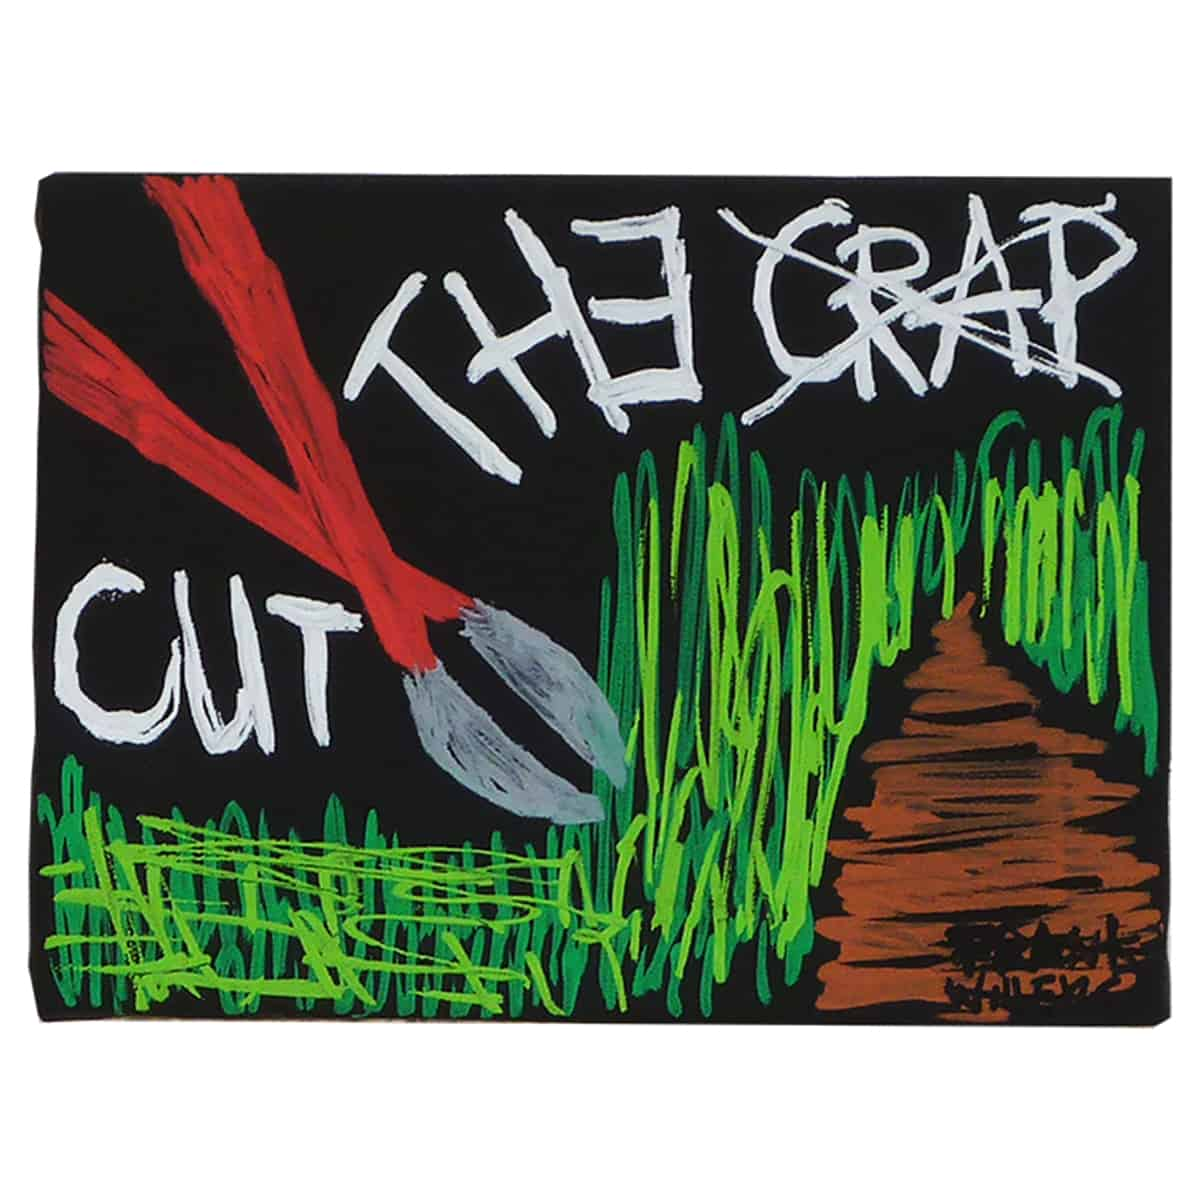 INSTA SESSION #01 - CUT THE CRAP - Frank Willems